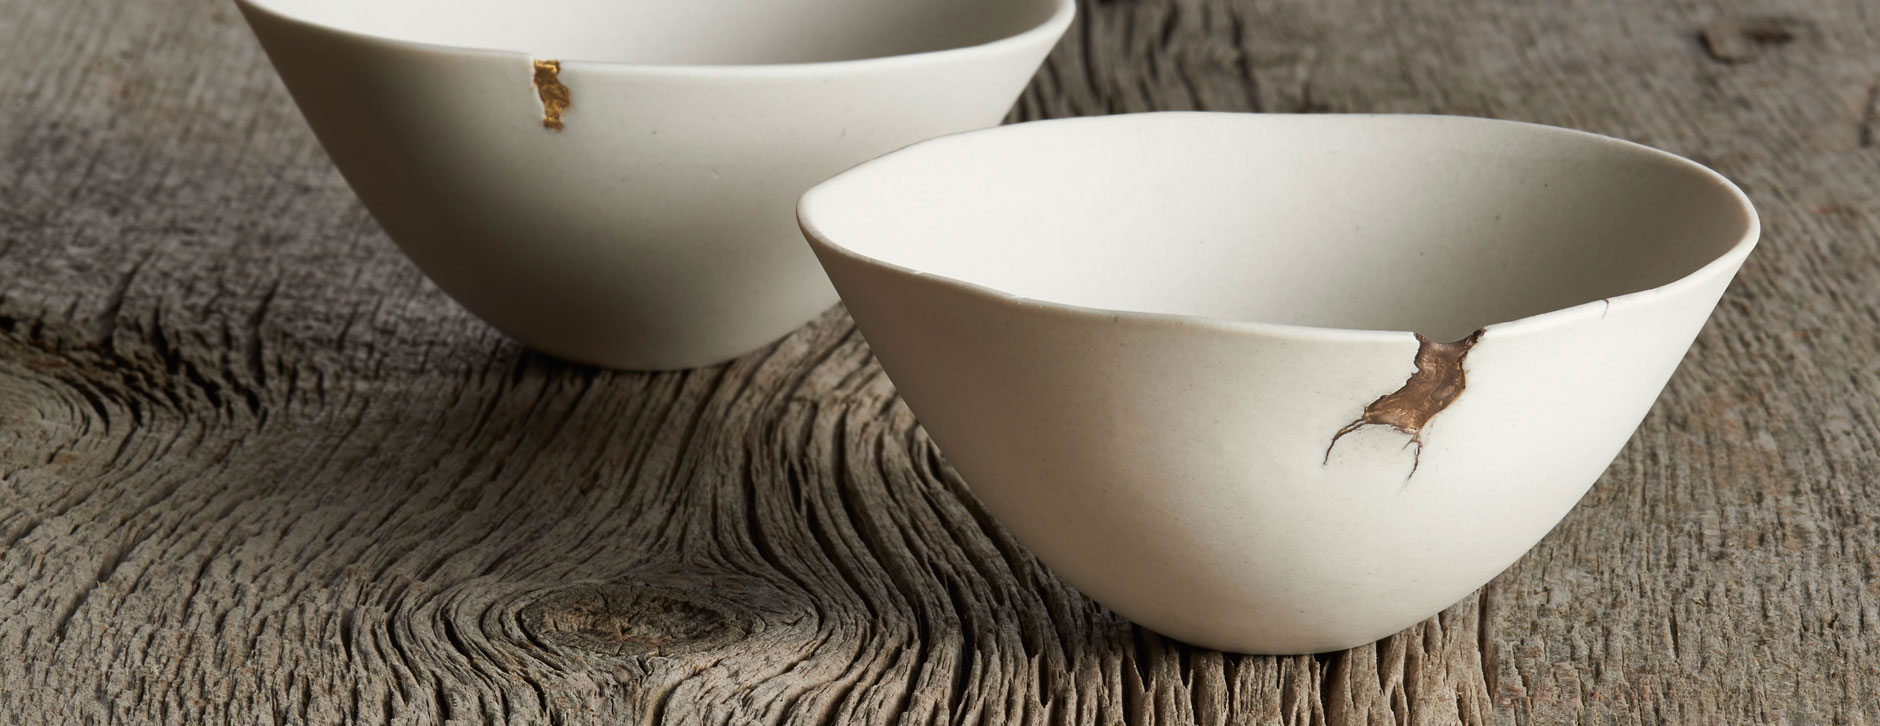 Wabi sabi vessels stone bone wood cloth for Cuisine wabi sabi